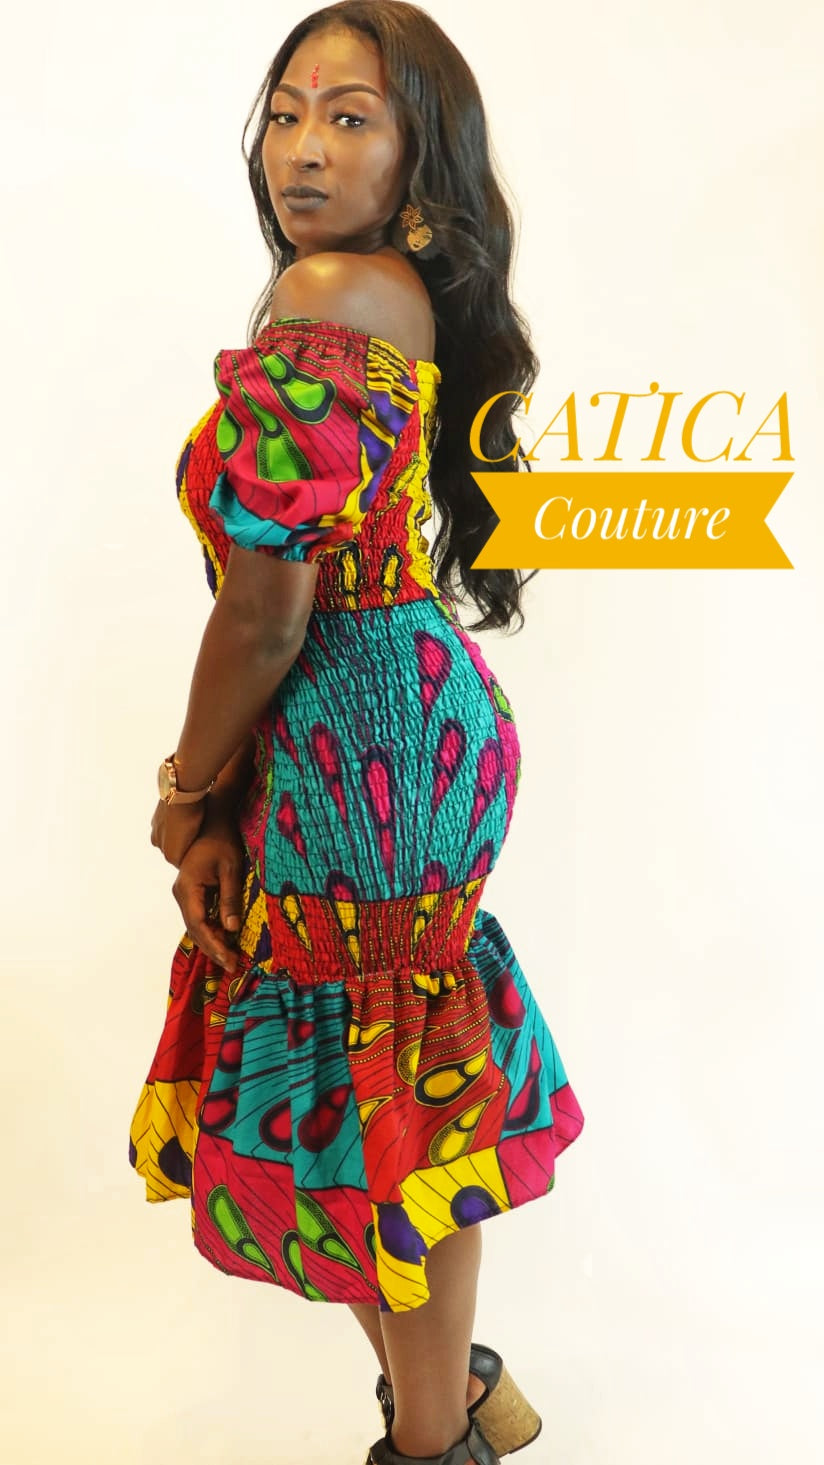 The Peacock Elastic Dress | CATICA Couture - CATICA Couture